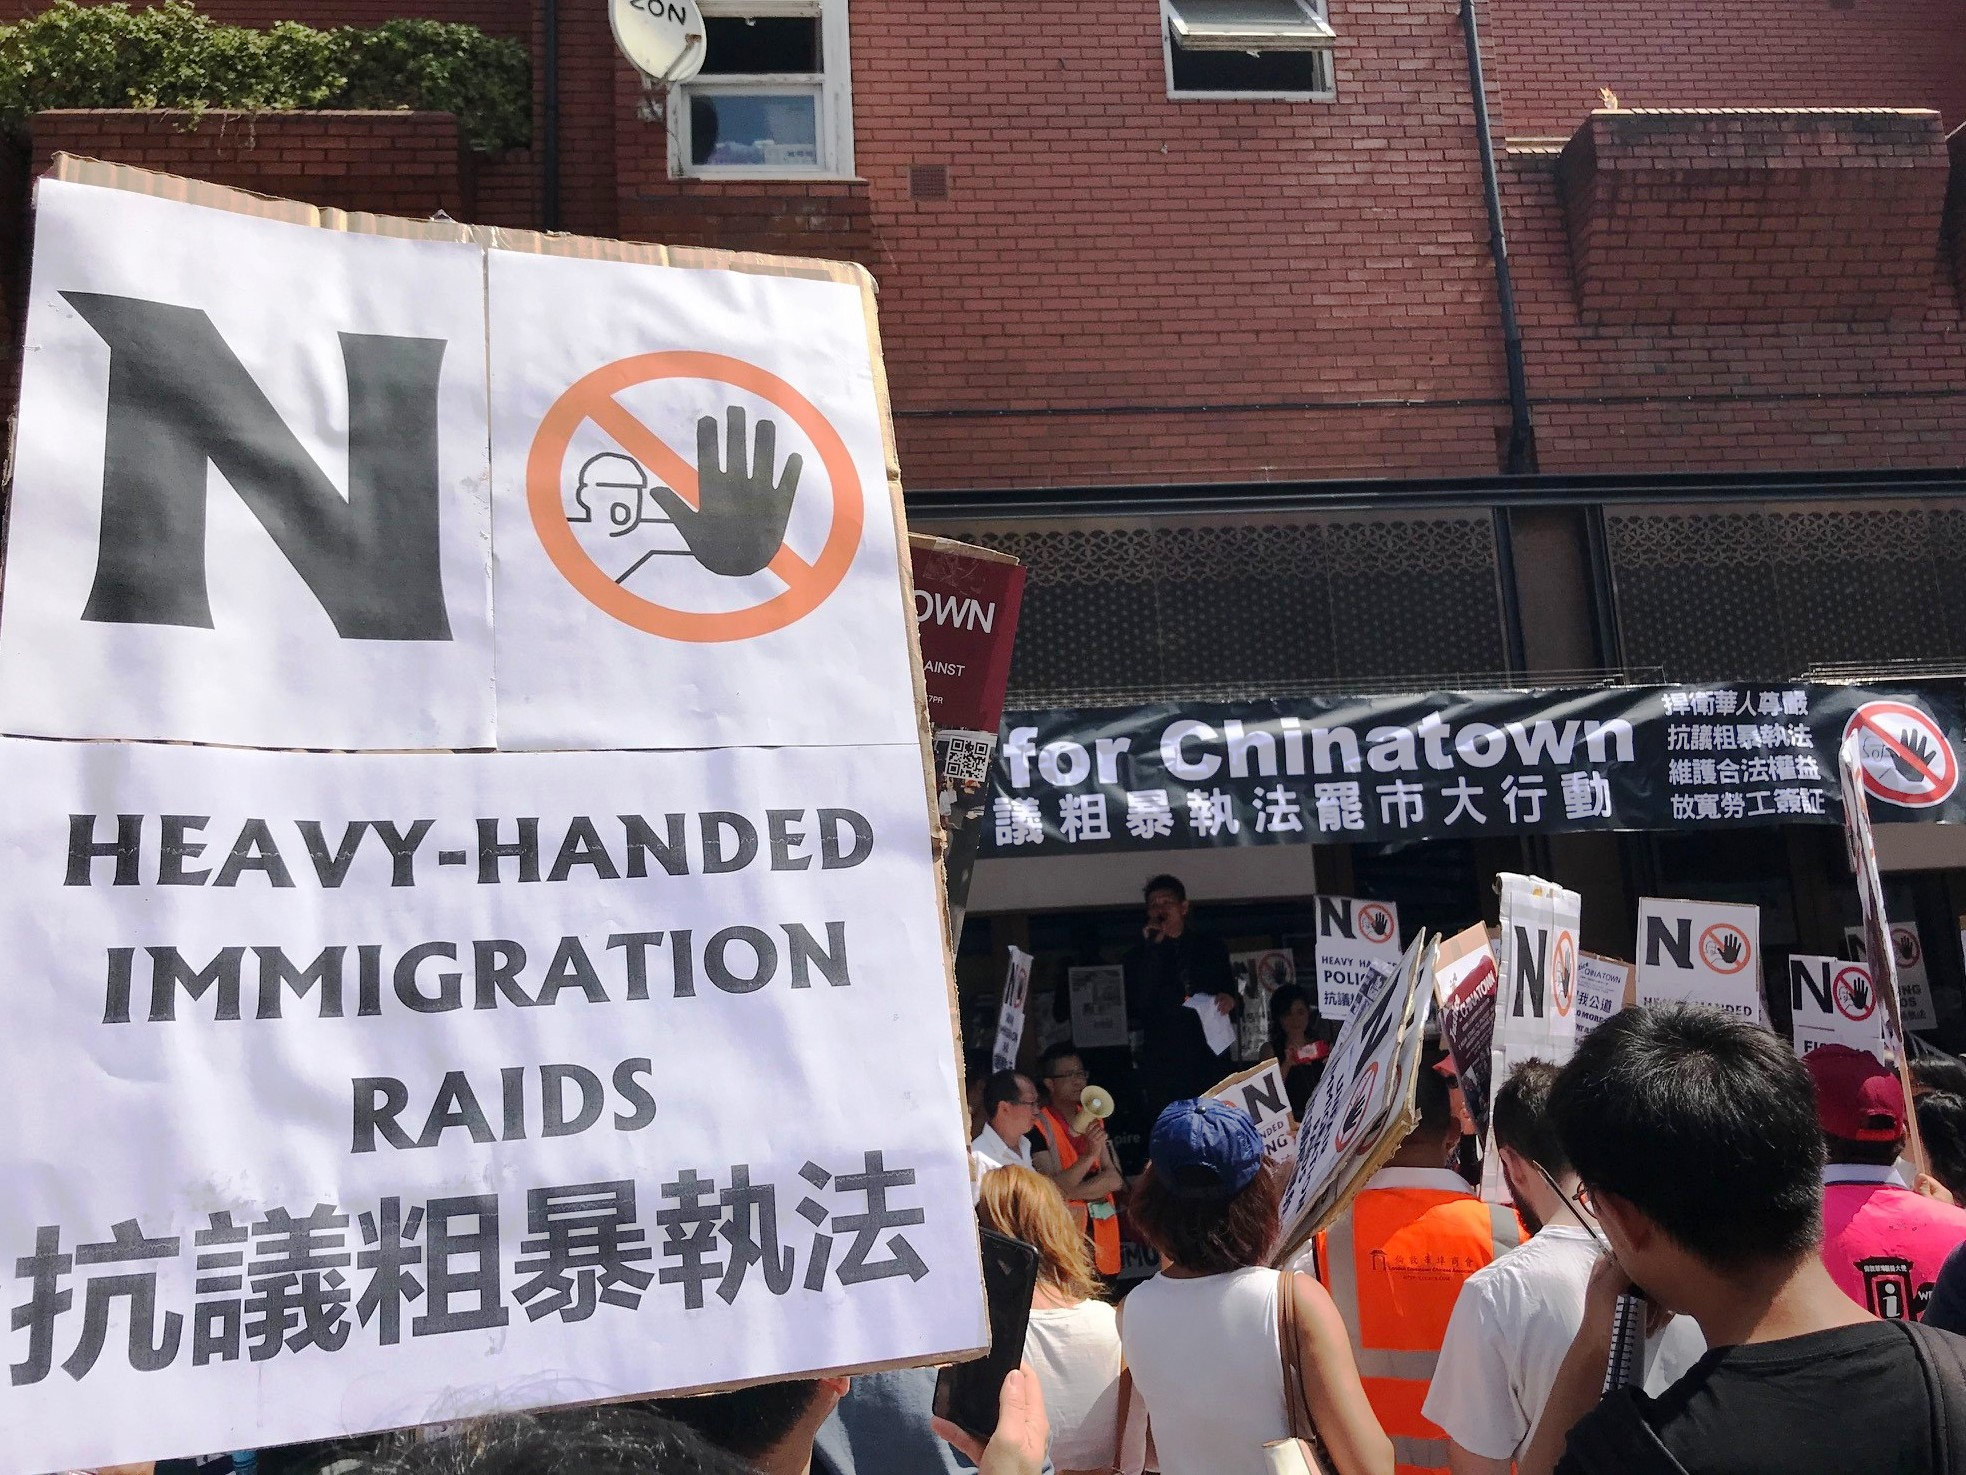 Justice for Chinatown – London Chinatown 5 Hour Strike (24 July 2018)